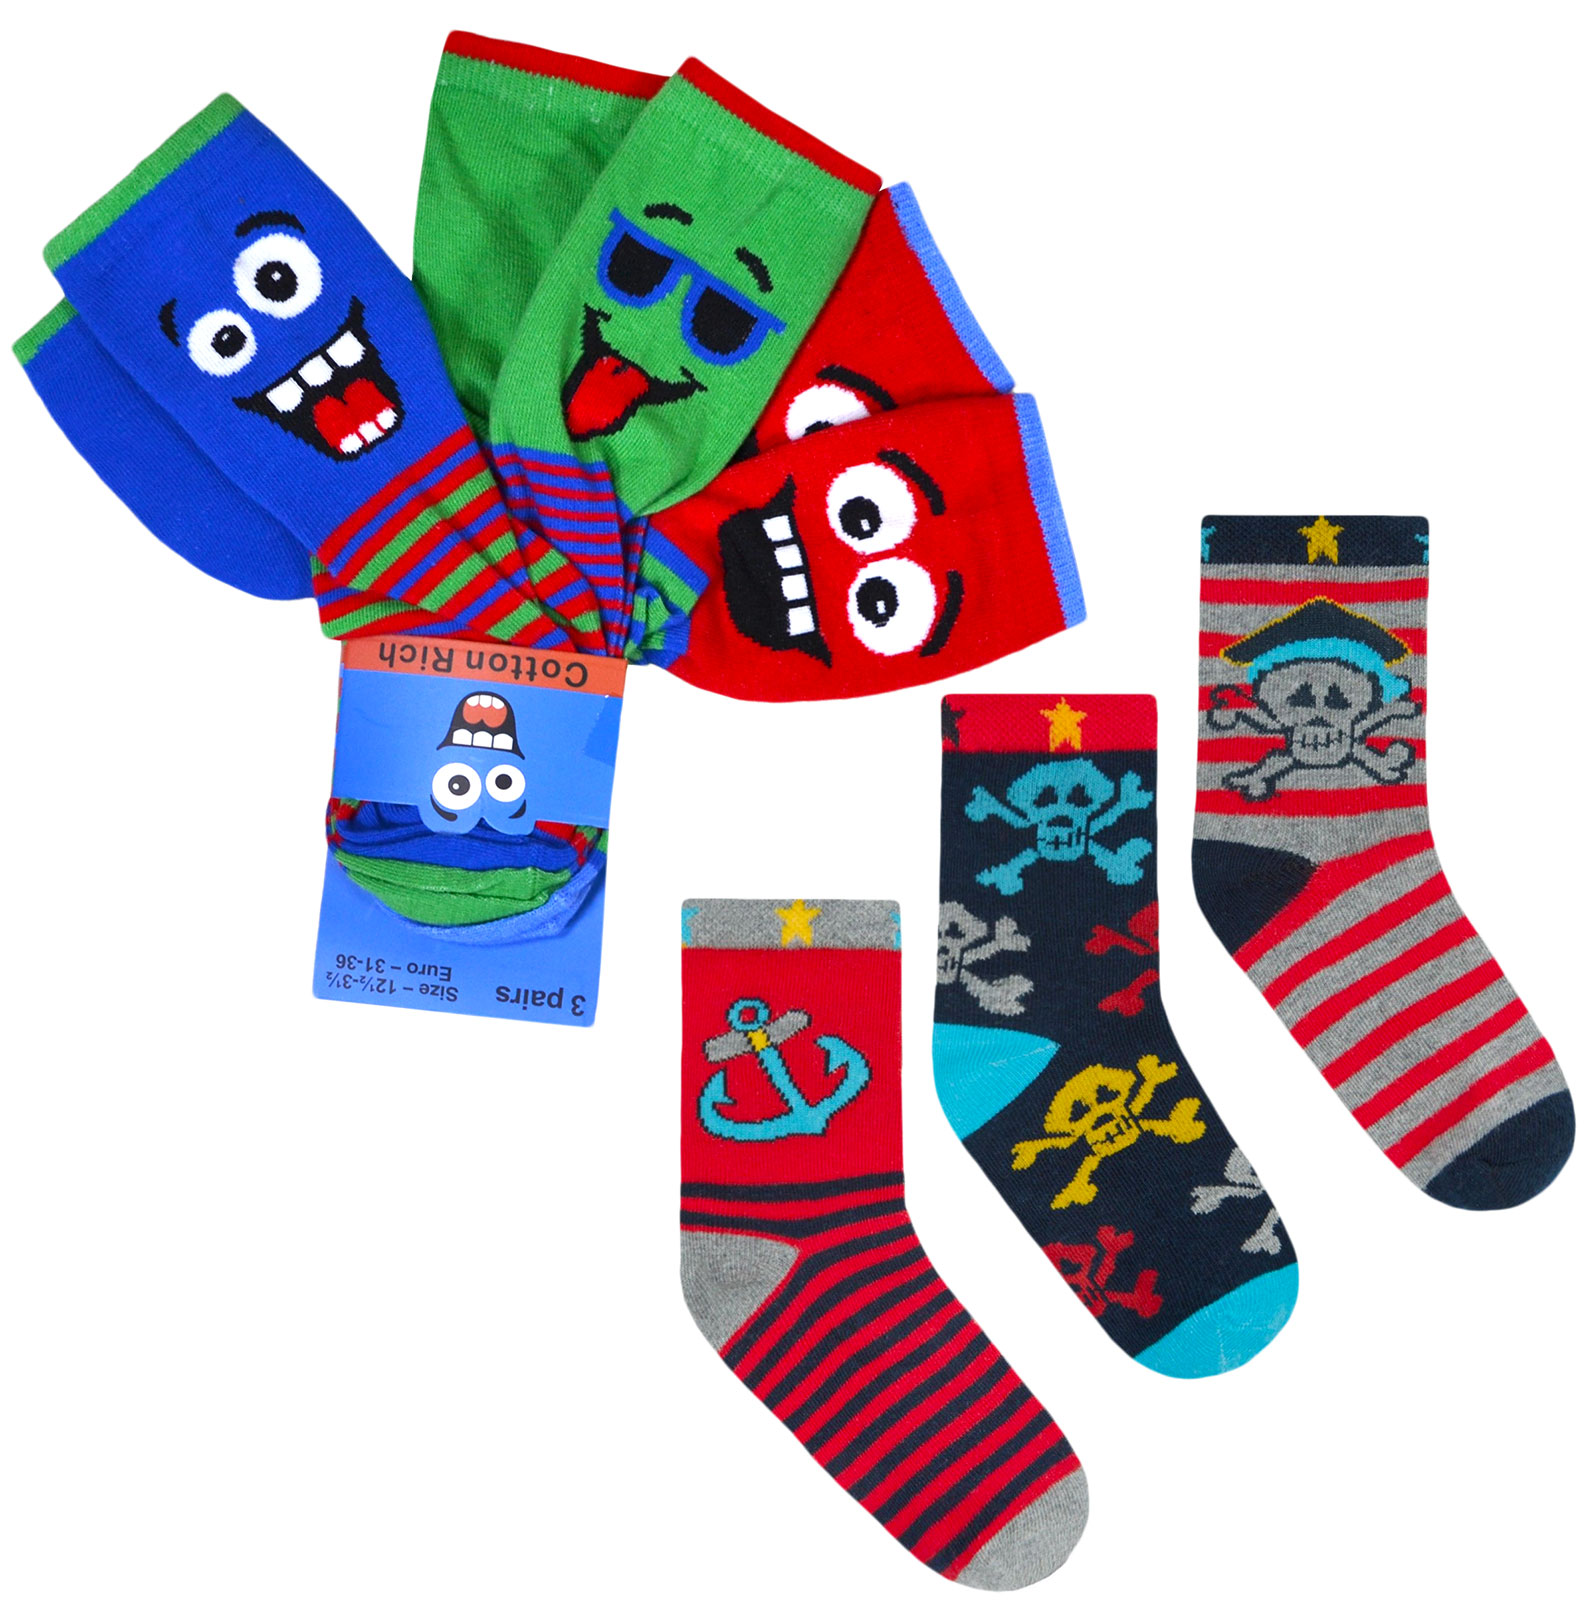 Boys Socks Football Character Socks Cotton Childrens Kids Designer 6 Pairs .